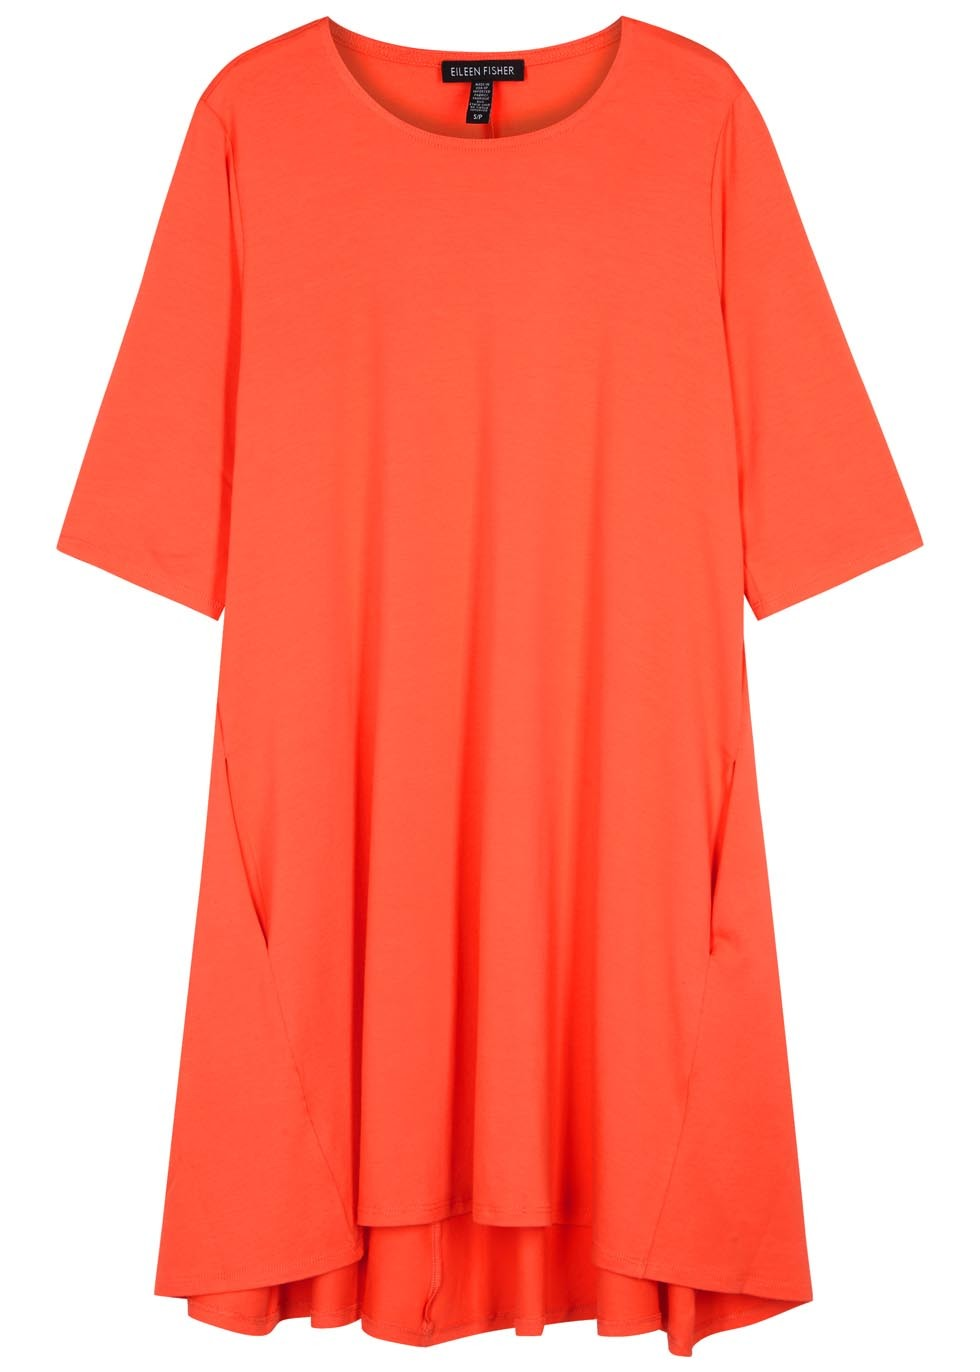 Coral Jersey Top - neckline: round neck; pattern: plain; length: below the bottom; predominant colour: coral; occasions: casual; style: top; fibres: viscose/rayon - stretch; fit: loose; sleeve length: half sleeve; sleeve style: standard; pattern type: fabric; texture group: jersey - stretchy/drapey; season: s/s 2016; wardrobe: highlight